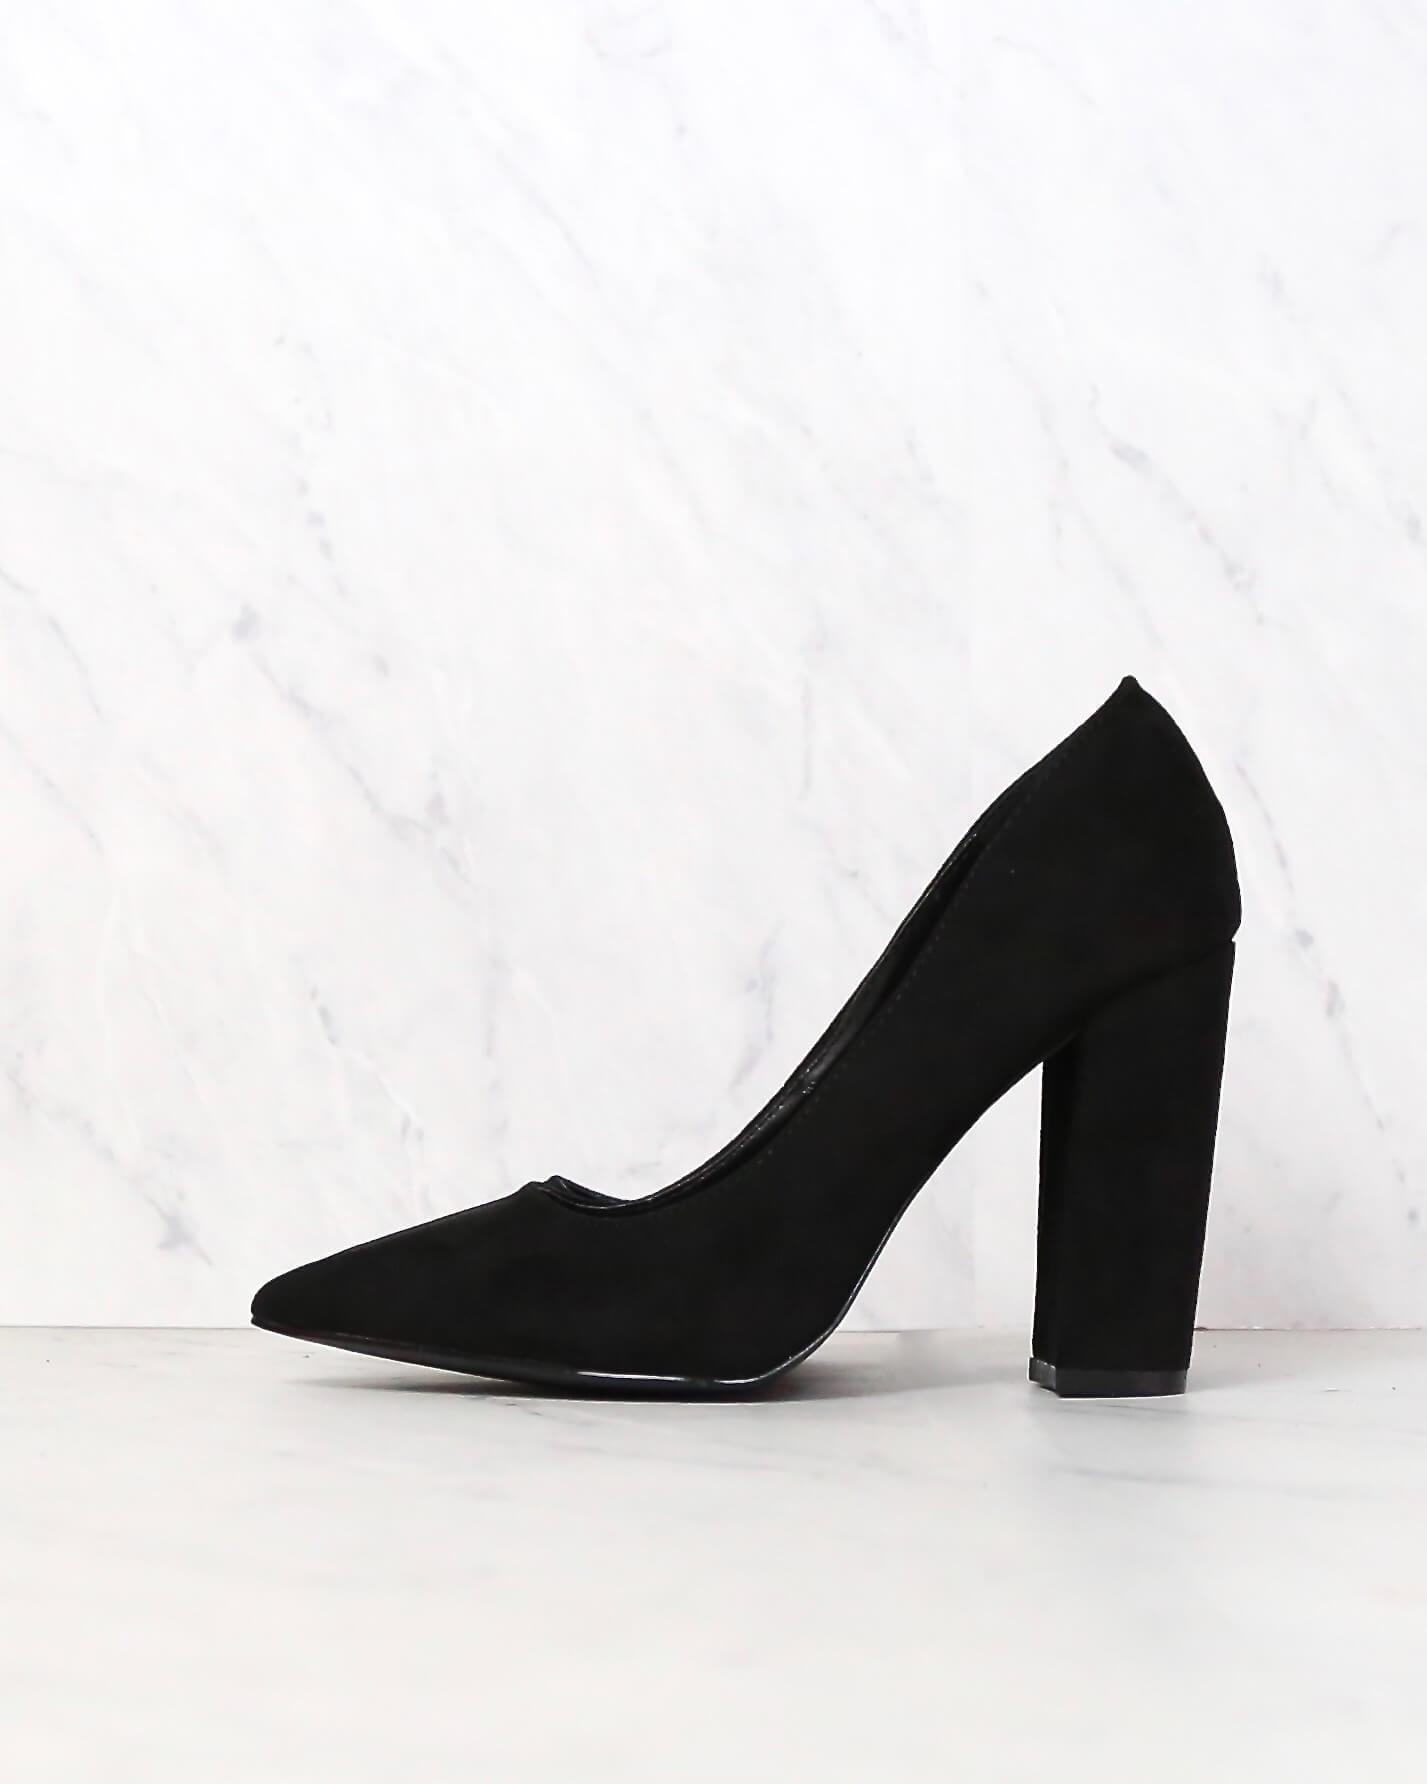 Image of Vegan Suede Chunky Heeled Pointed Toe Pumps in Black